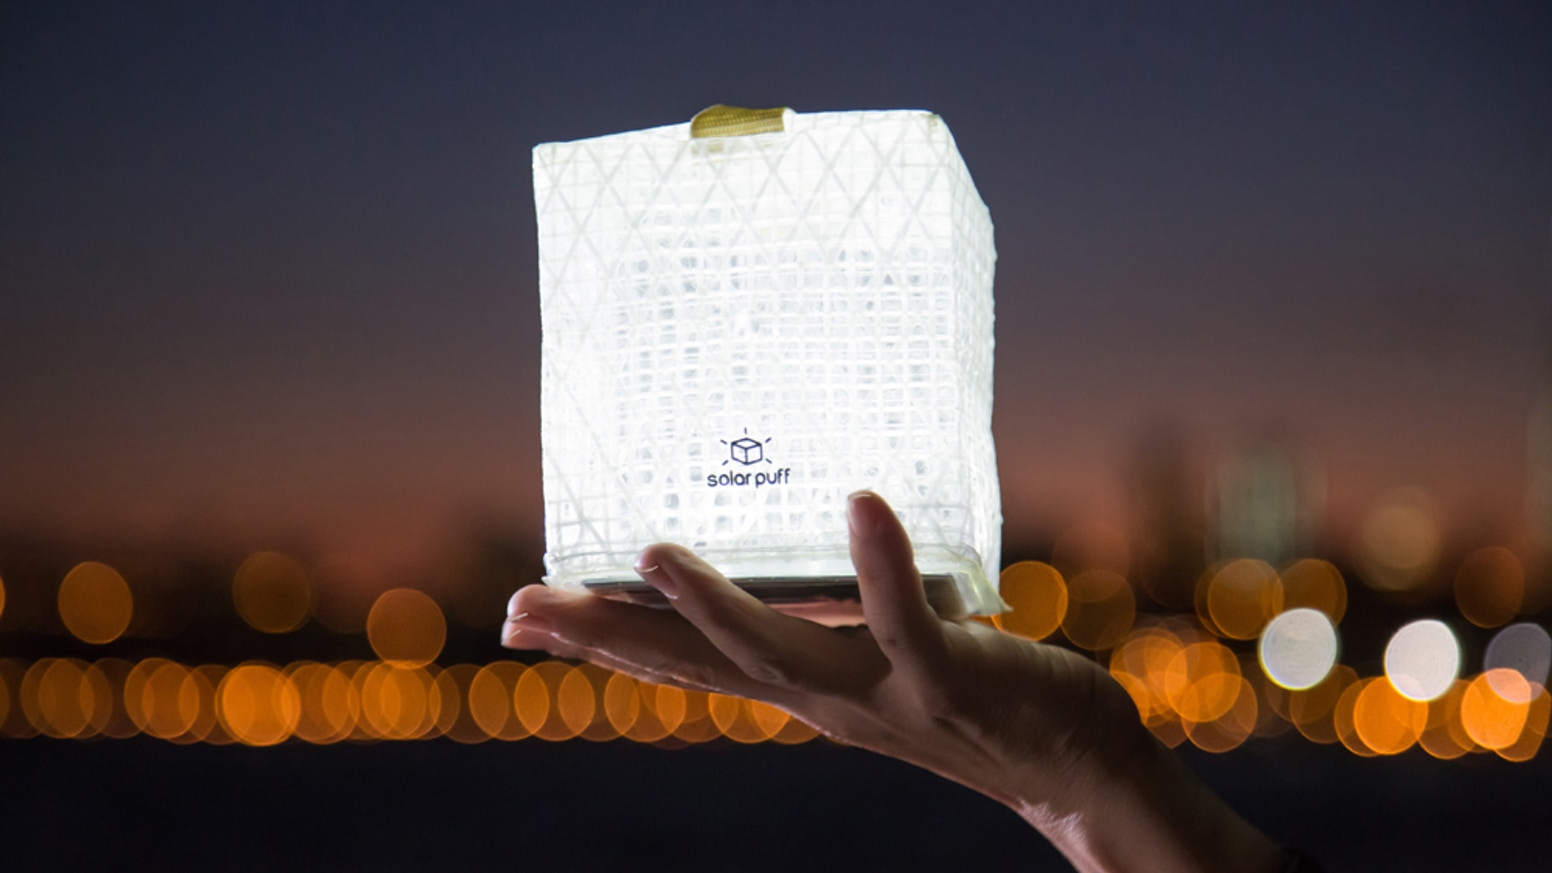 Solar Puff Lights are giving hope to people without power in Puerto Rico